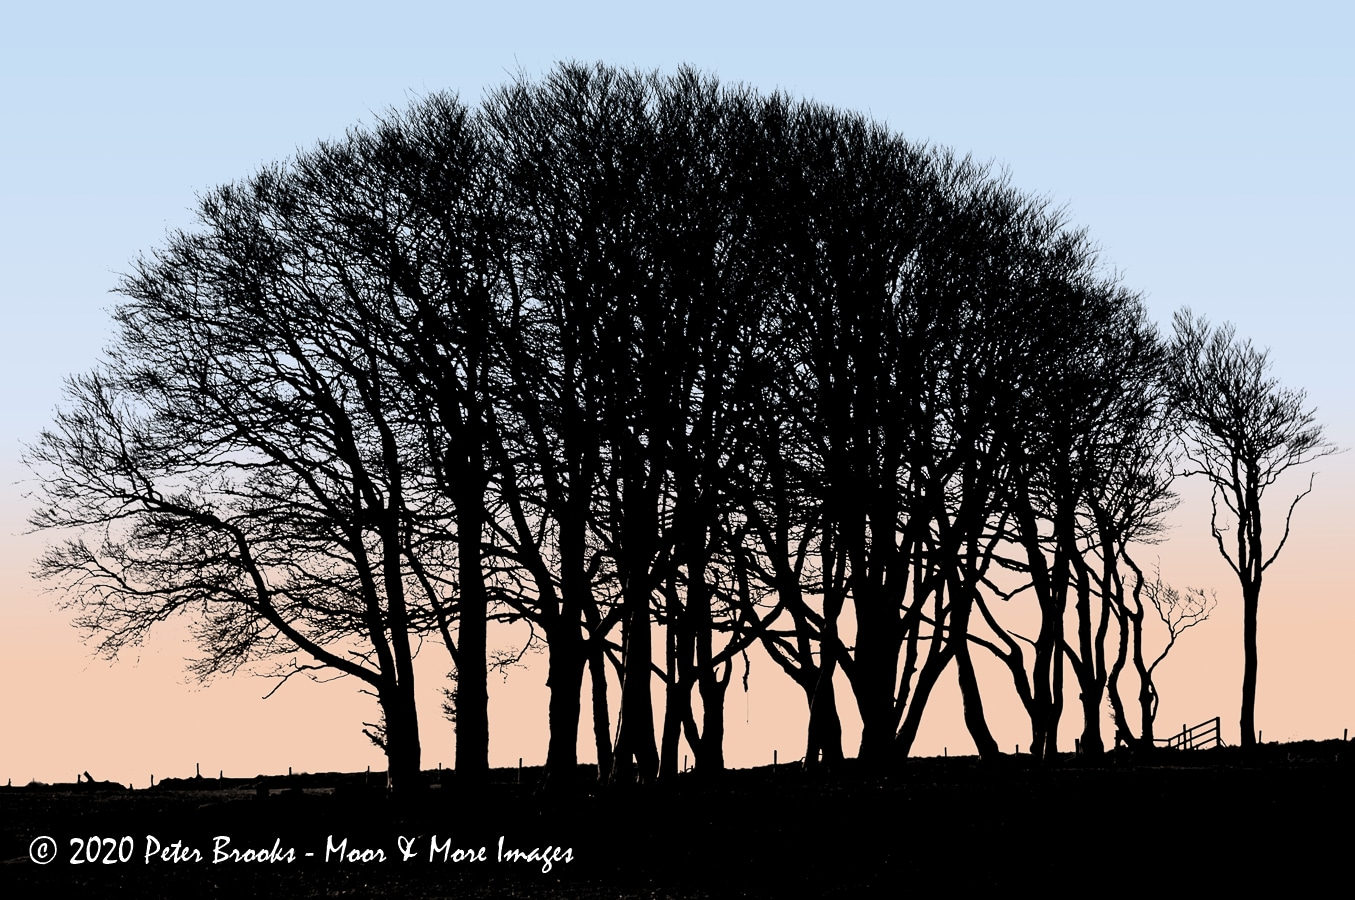 Image of trees at Powder Mills, Dartmoor, in the style of a linocut